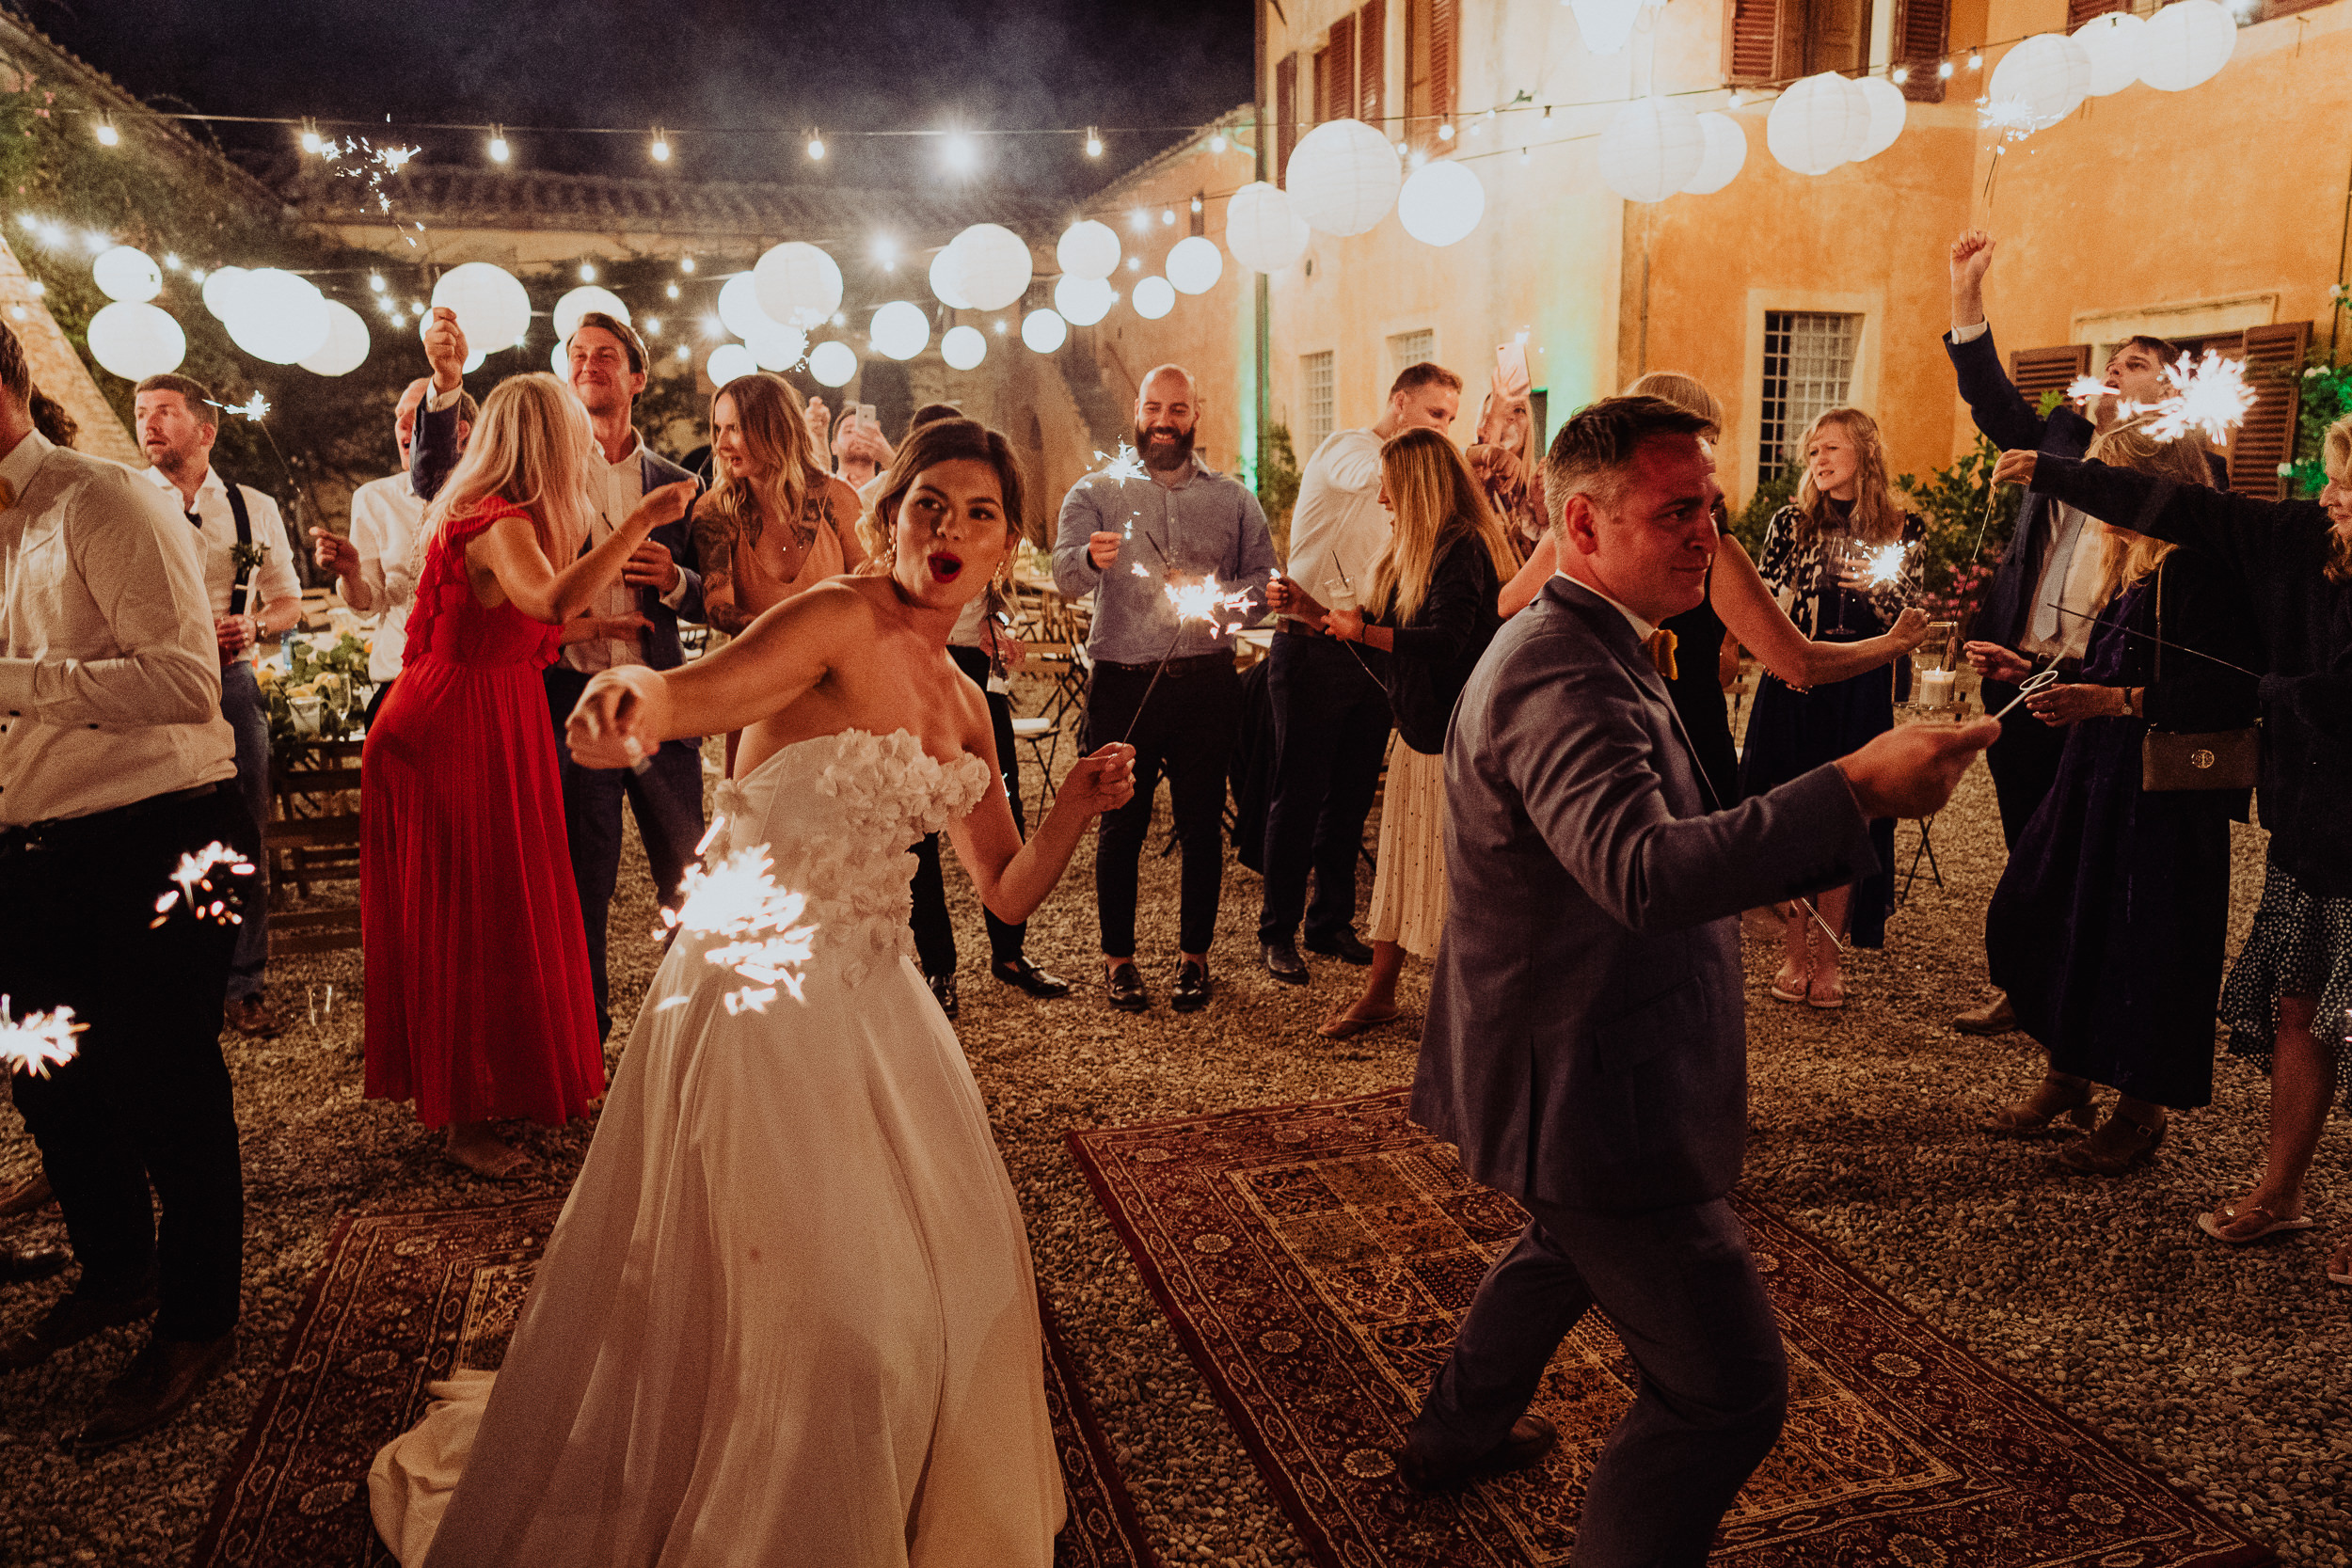 Tuscan Villa Wedding - The Bride and Groom with sparklers